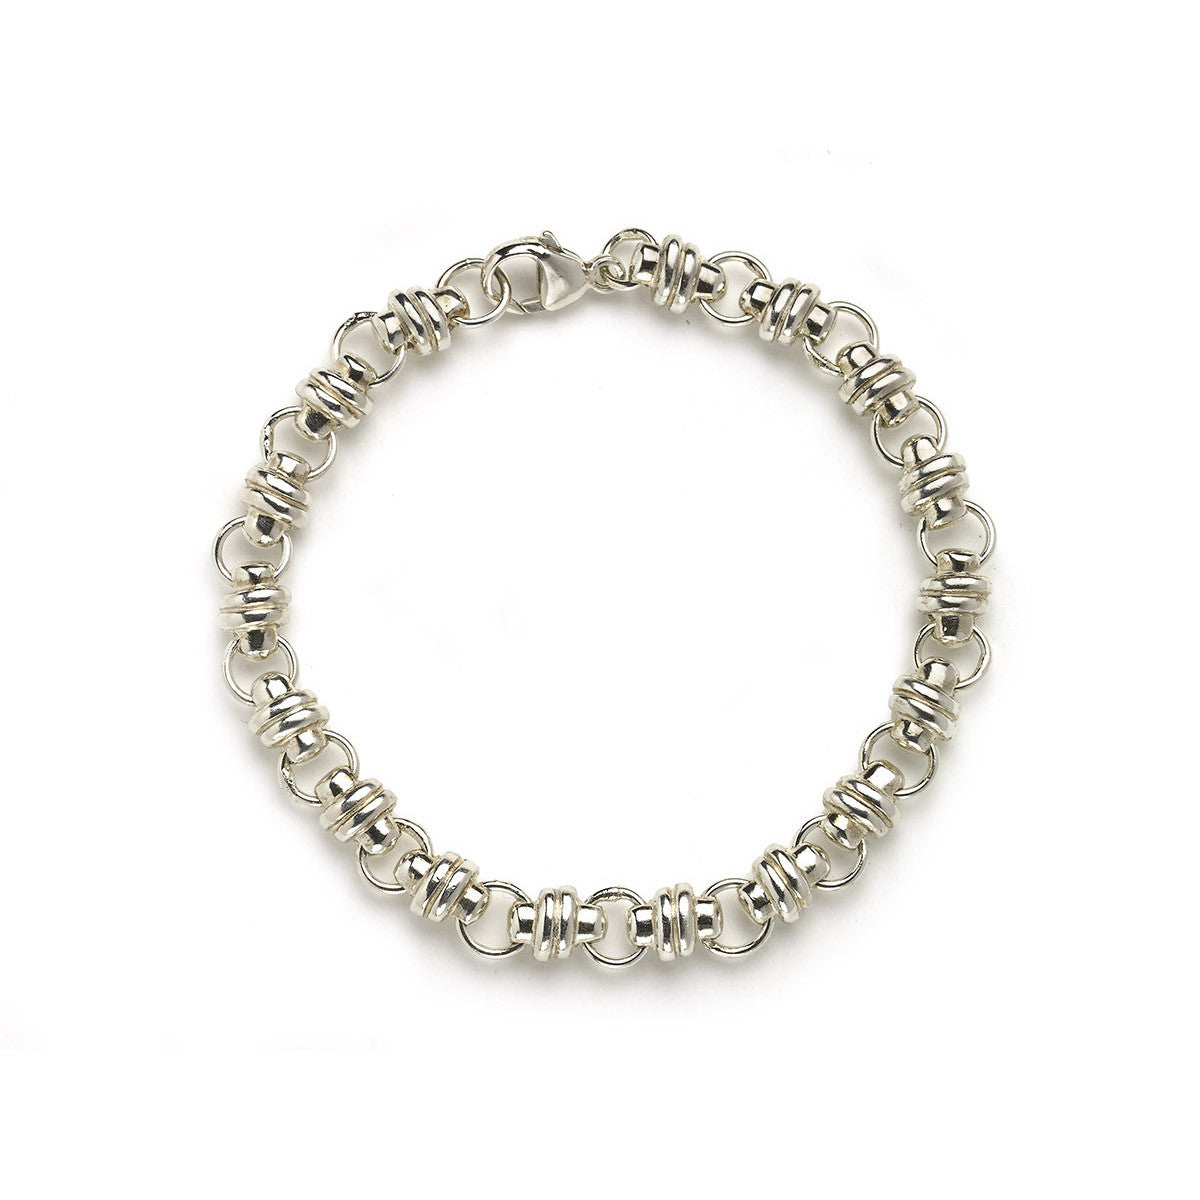 Silver bracelet with thick links interspersed with small round links